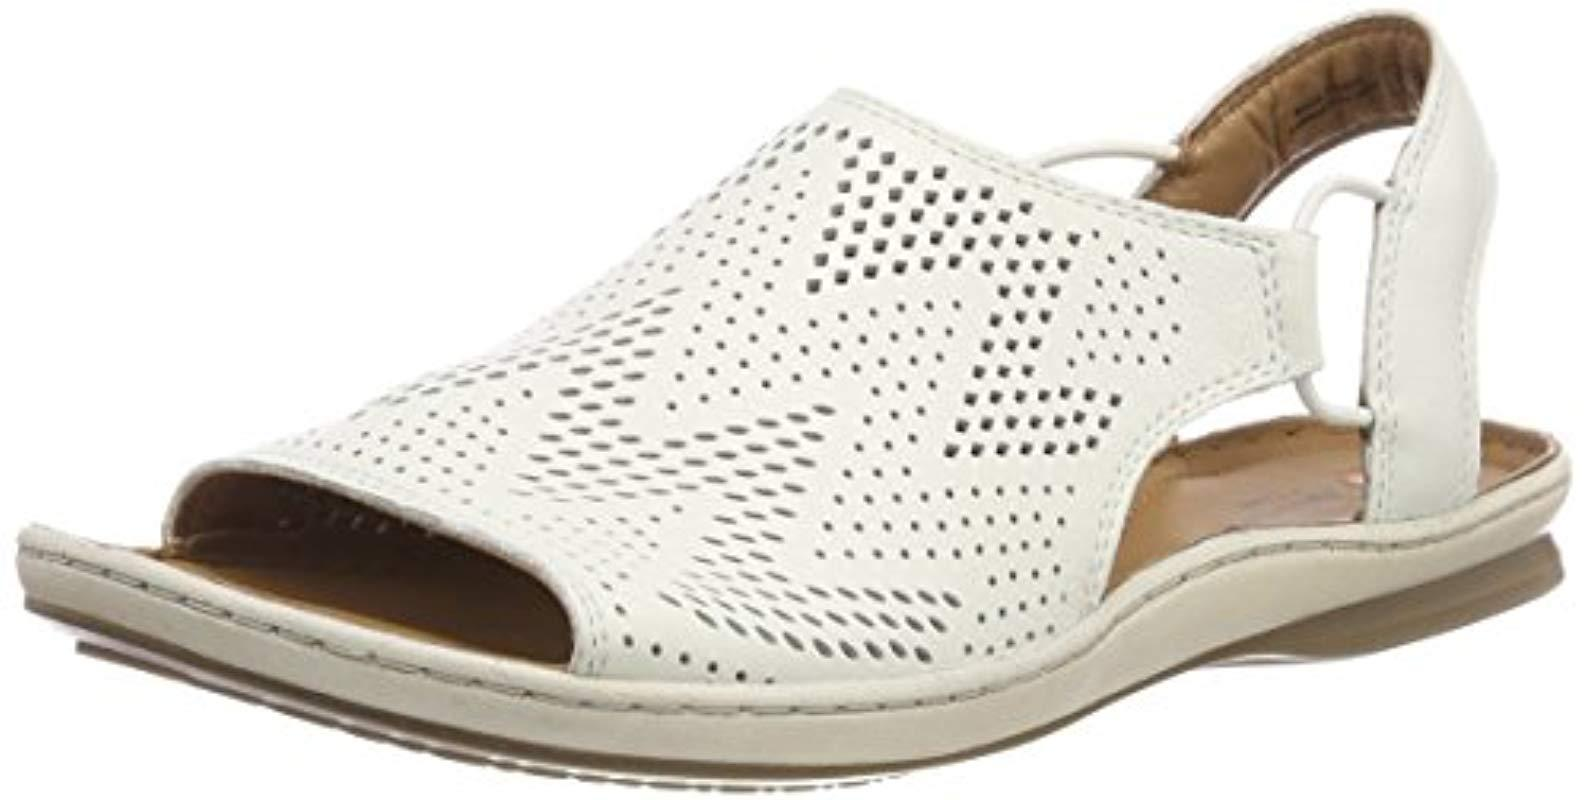 2afd5ac80b15 Clarks Sarla Cadence Closed Toe Sandals Black in White - Save 2% - Lyst